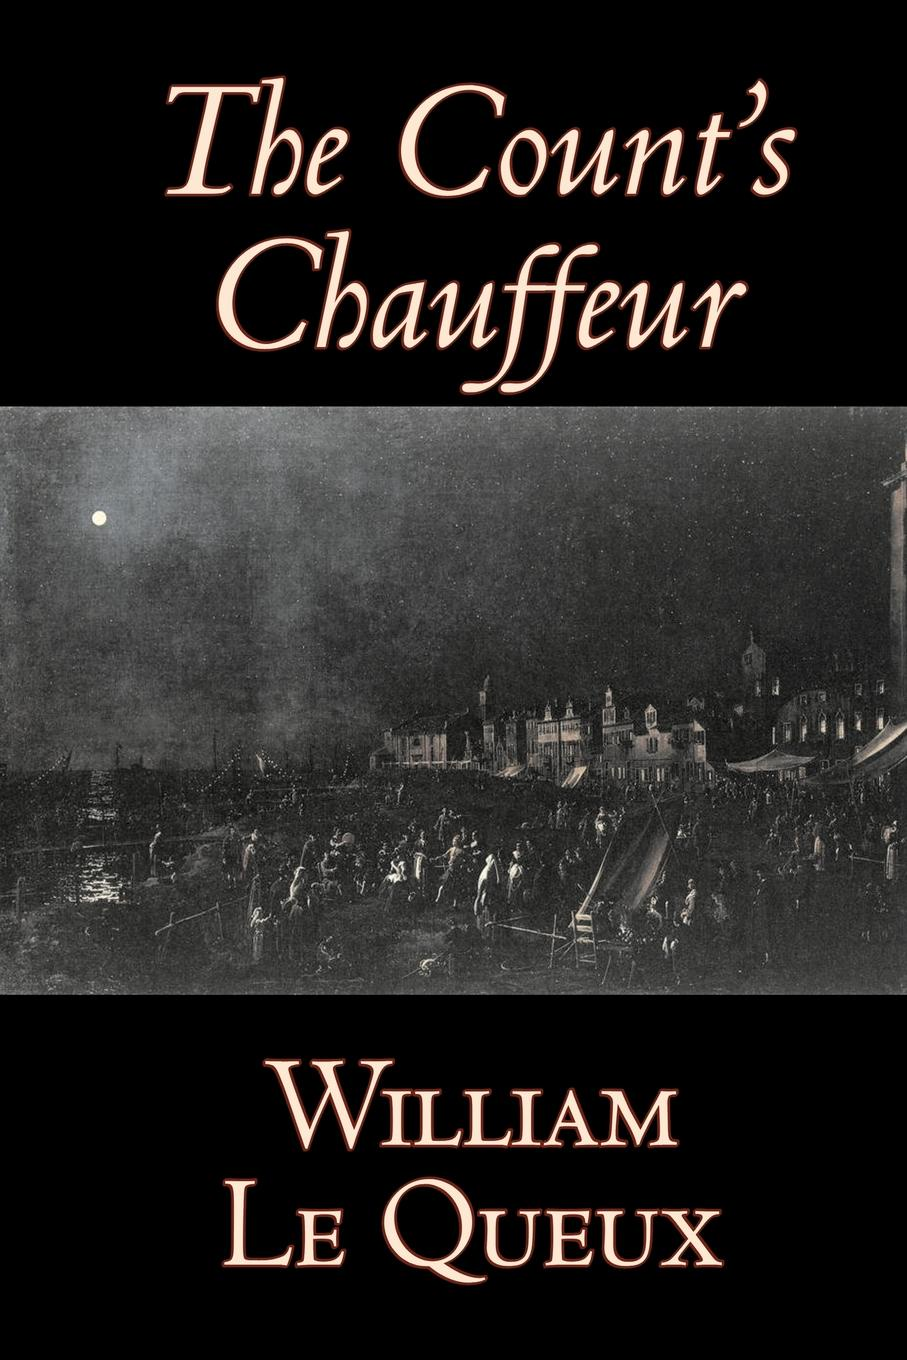 William Le Queux The Count's Chauffeur by William Le Queux, Fiction, Literary, Espionage, Action & Adventure, Mystery & Detective